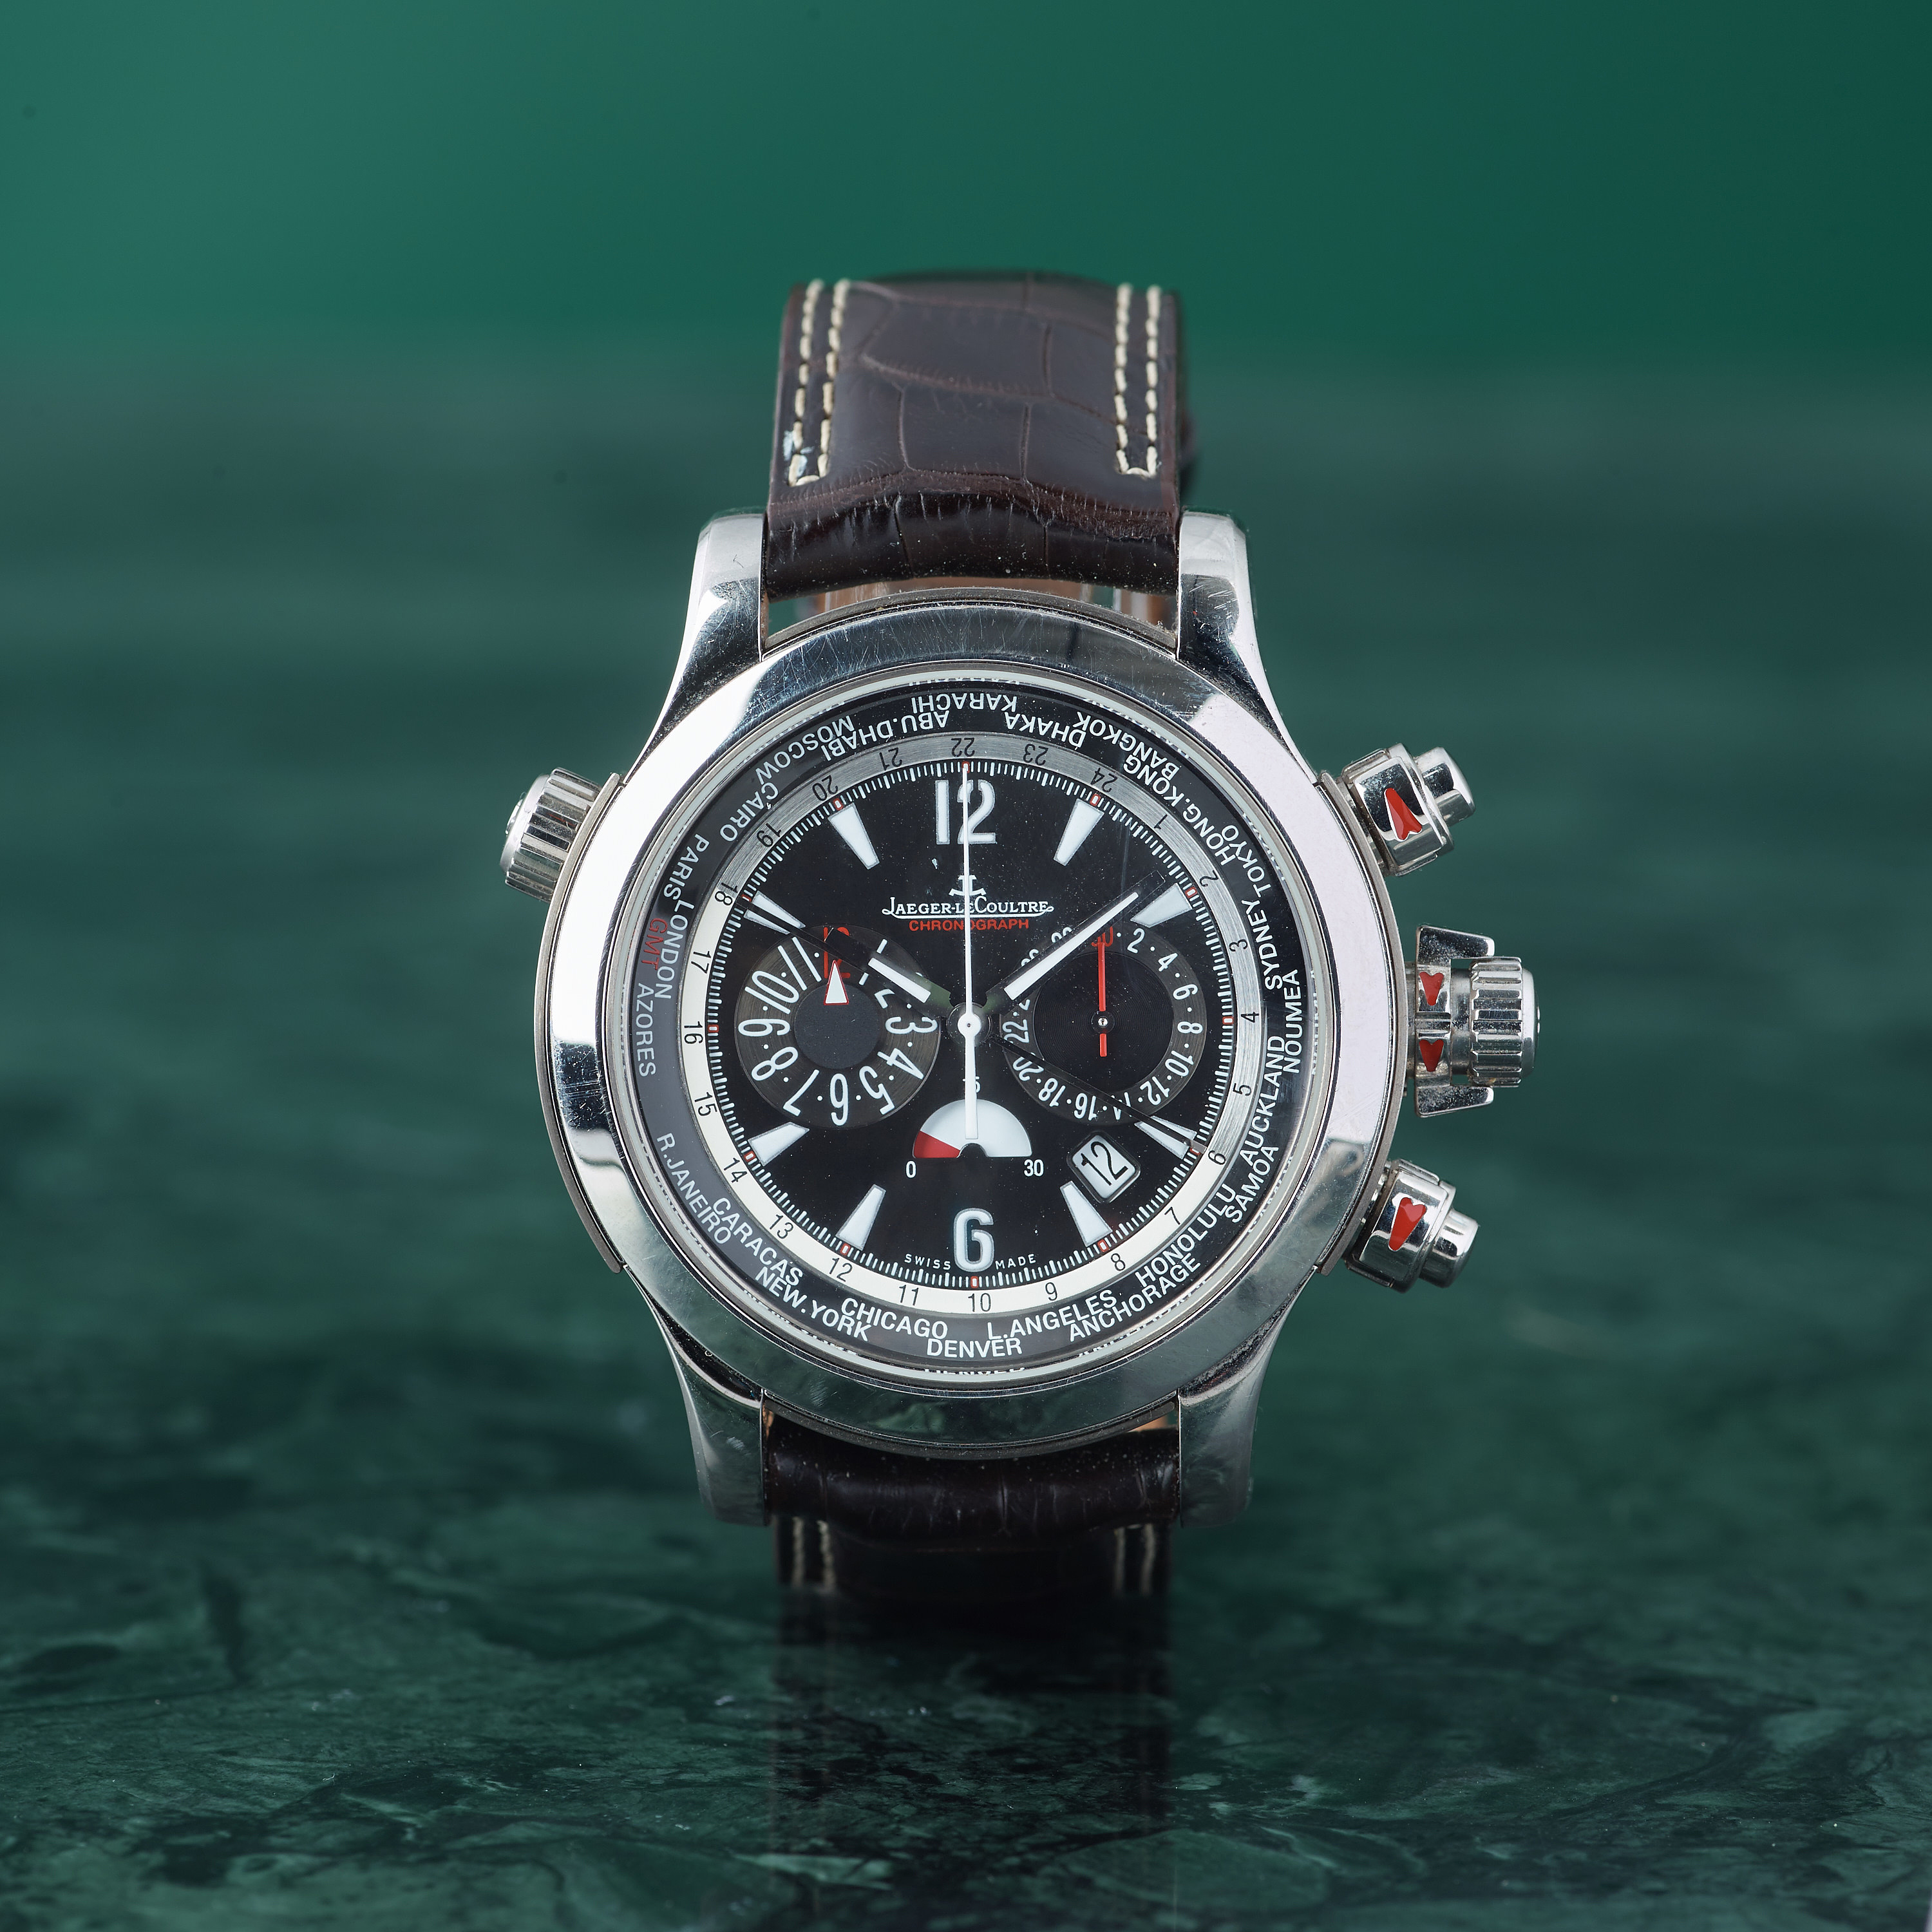 JAEGER-LECOULTRE, Master Compressor, Extreme World